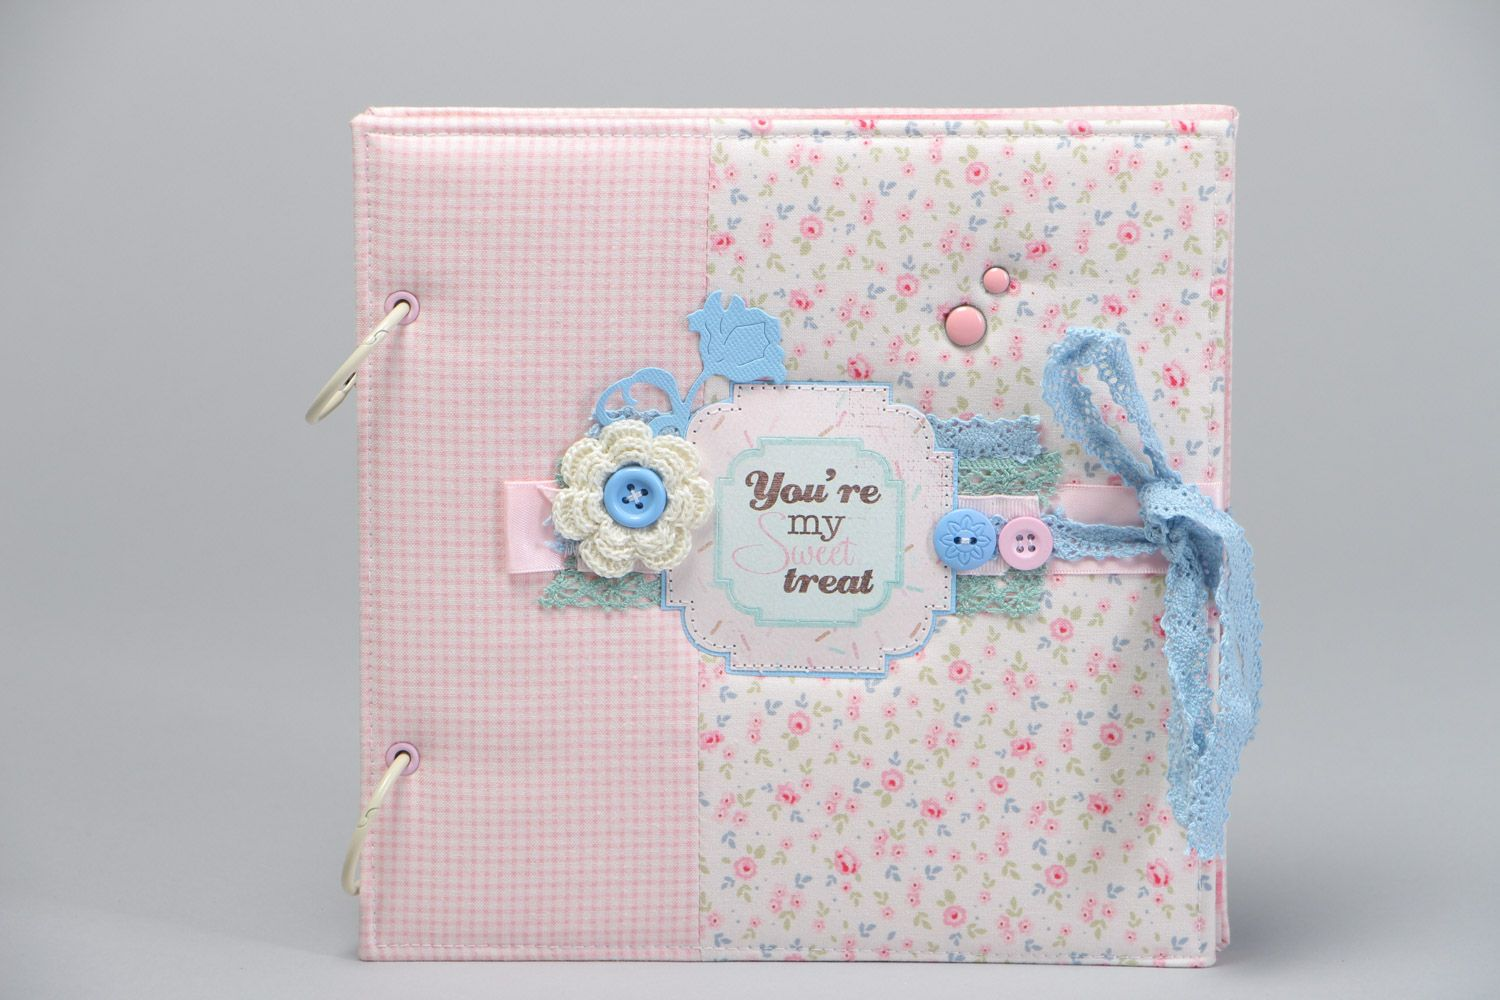 Handmade designer scrapbooking photo album for 25 pages in pink colors photo 2